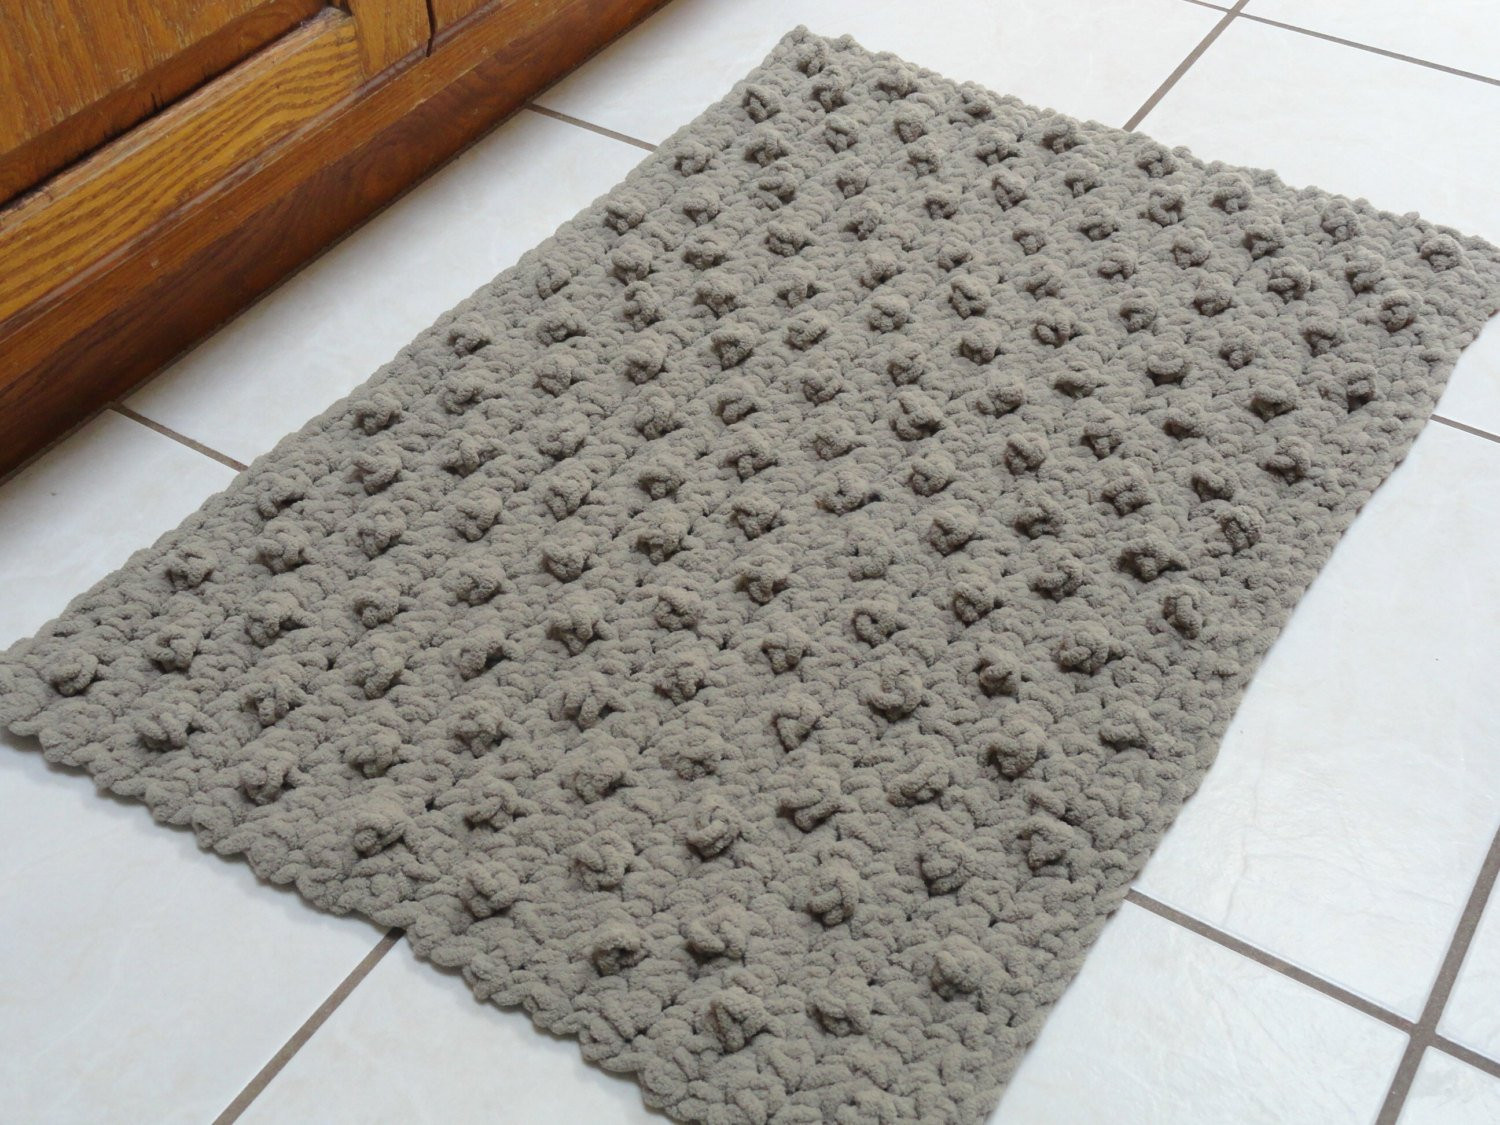 Inspirational Crochet Bathroom Rug Bumpy Bath Mat Kitchen Rug Beige Mushroom Crochet Bathroom Rug Of Great 43 Images Crochet Bathroom Rug